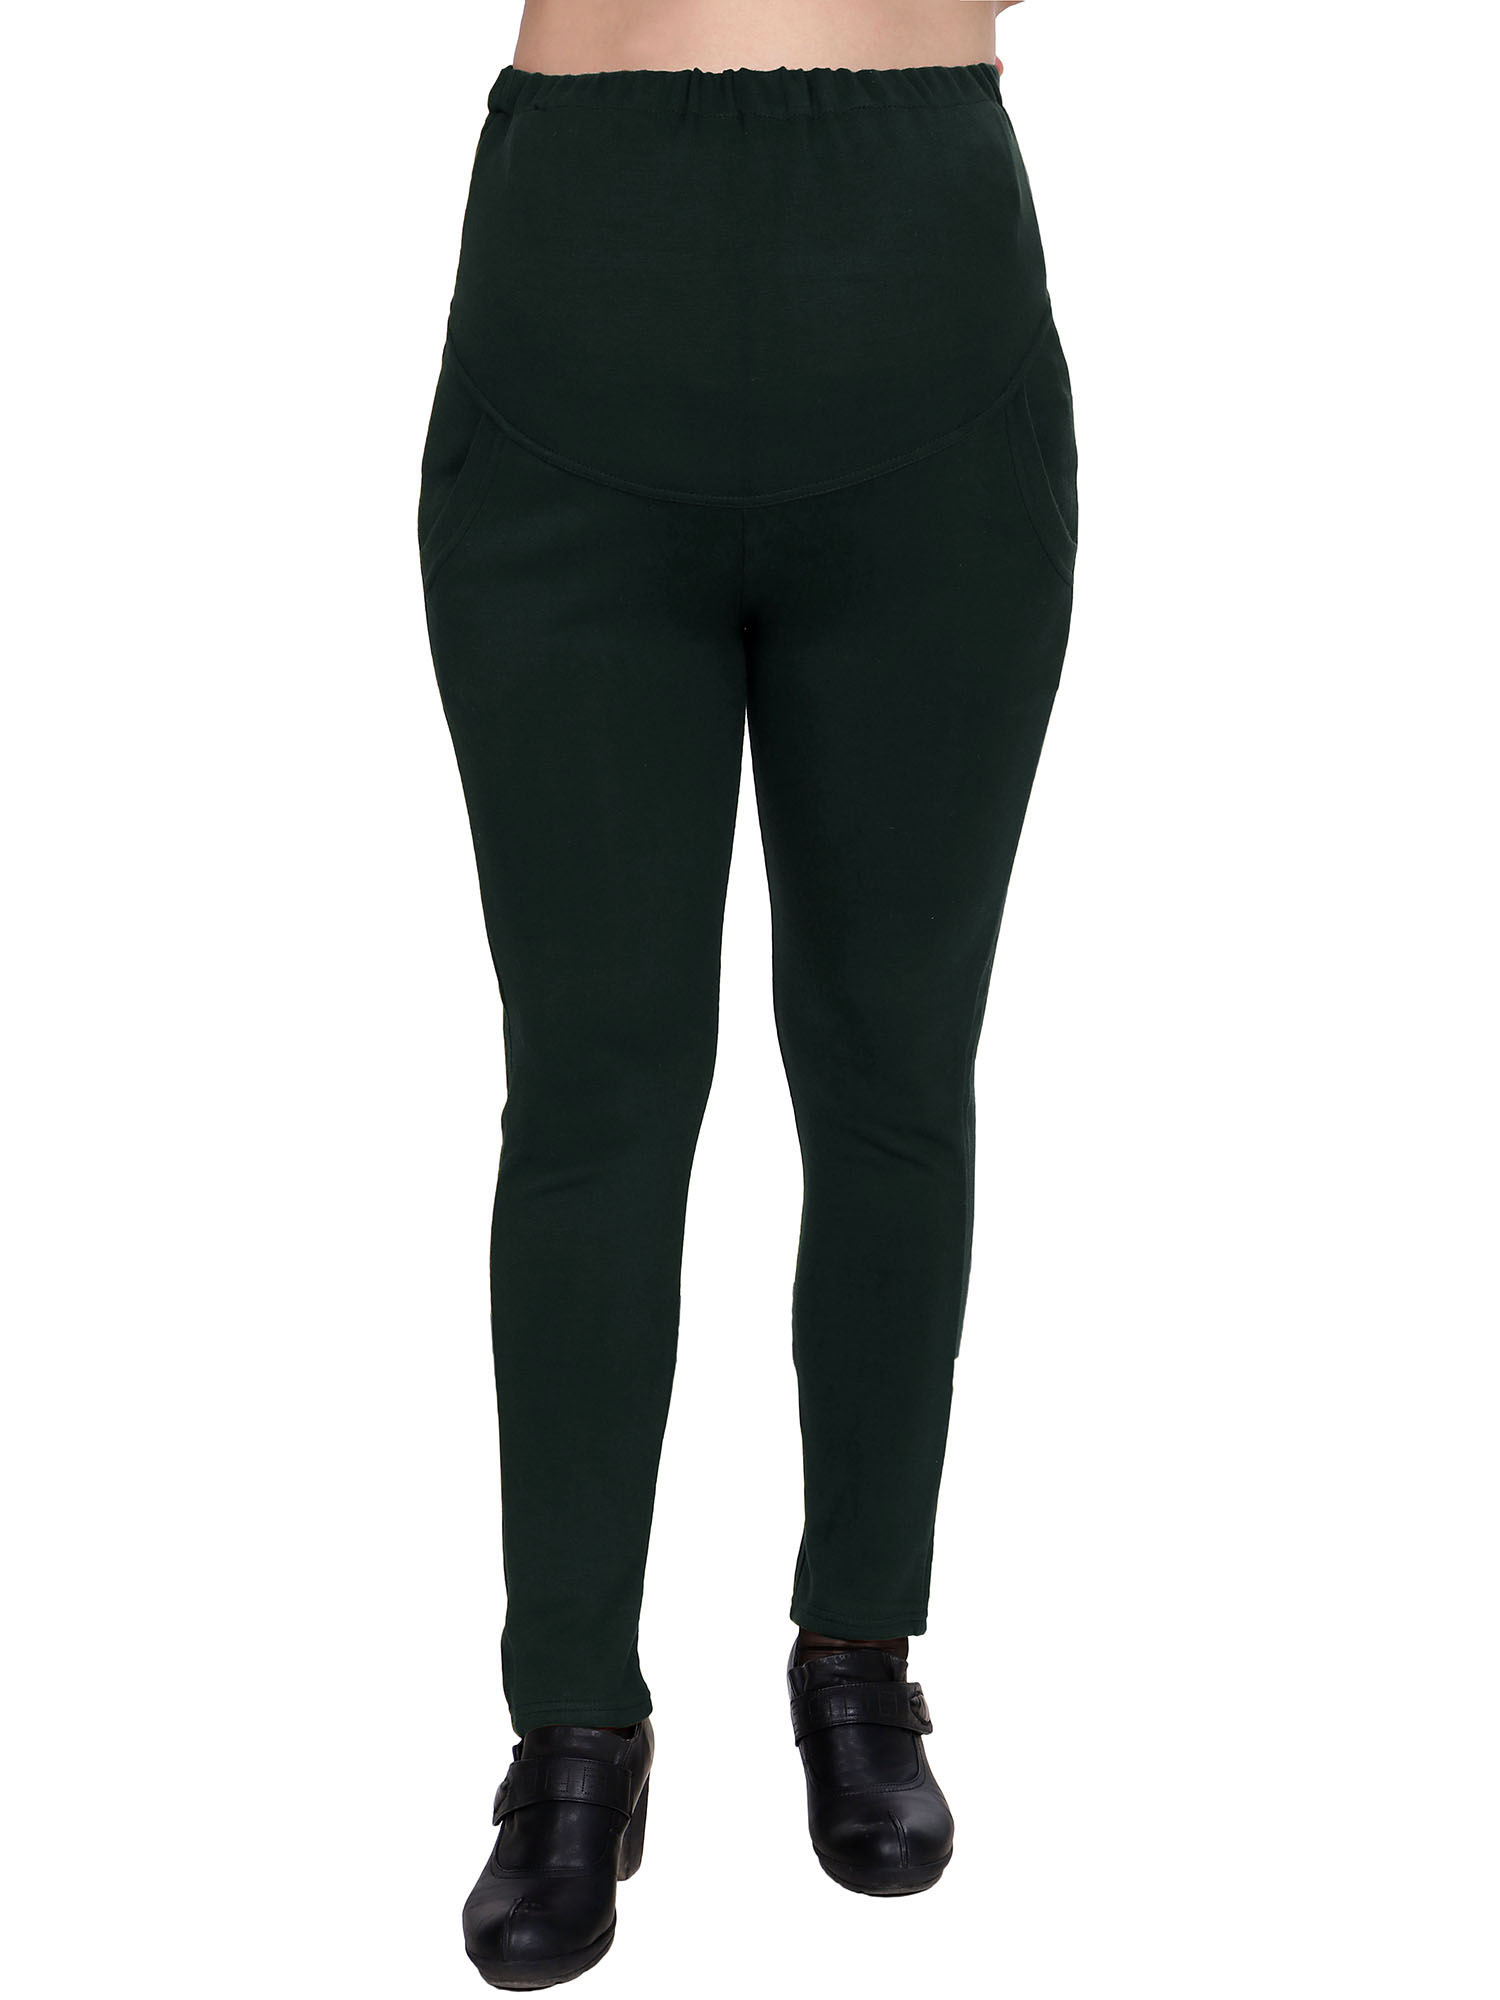 Harcadian High Waist Adjustable Stretchy Maternity Legging Pants,Green, One Size